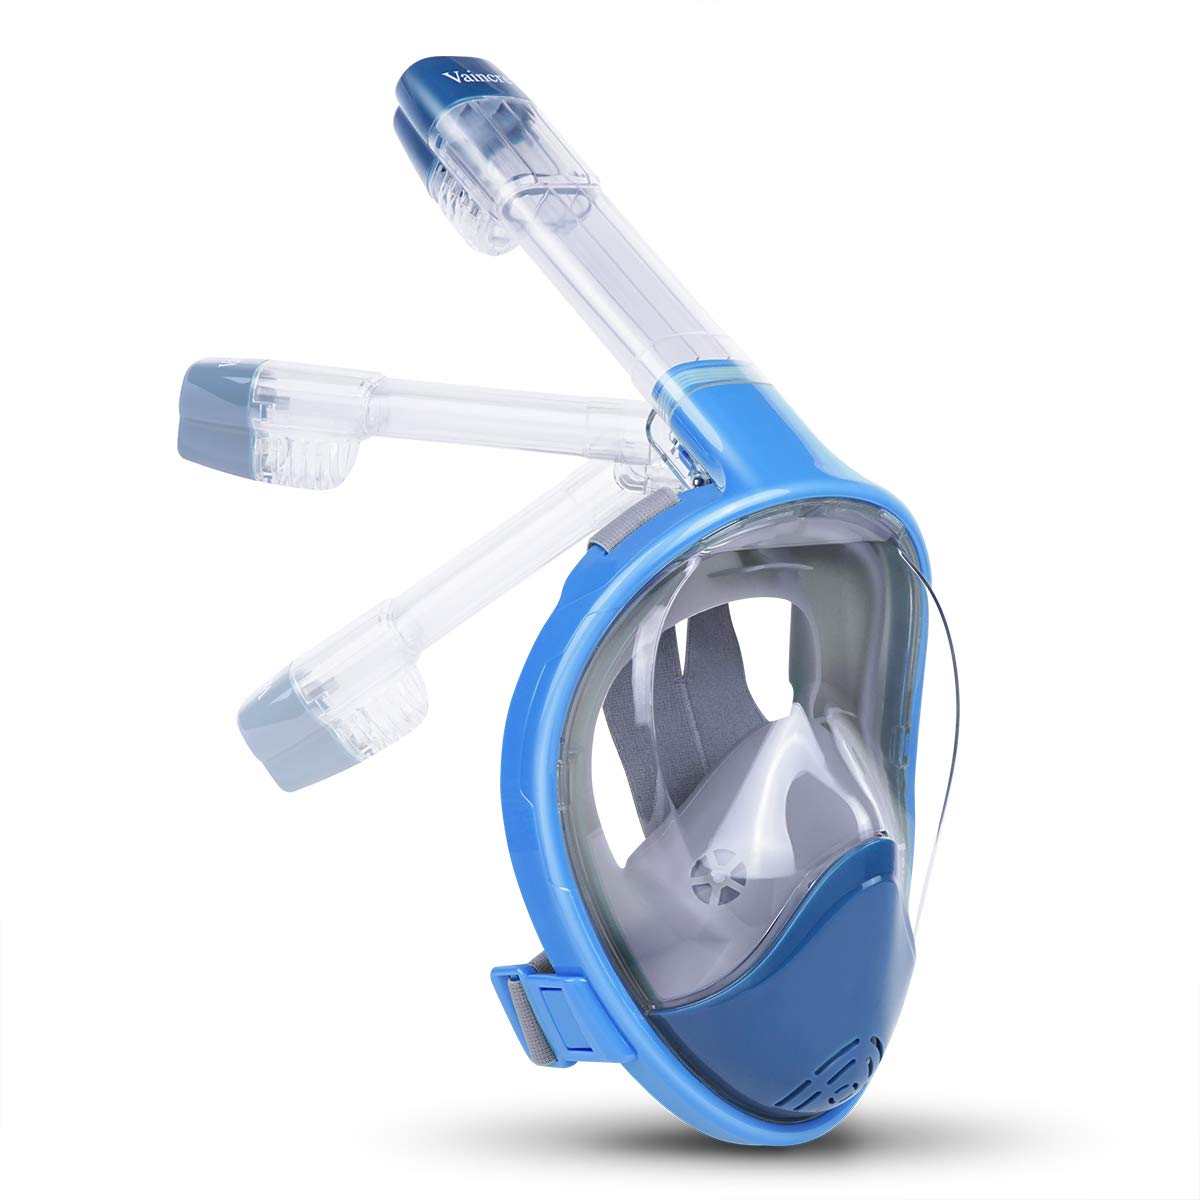 Vaincre 180° Full Face Snorkel Mask with Panoramic View Anti-Fog,Anti-Leak with Adjustable Head Straps-See Larger Viewing Area Than Traditional Masks (Foldable Panoramic Blue, Small/Medium)